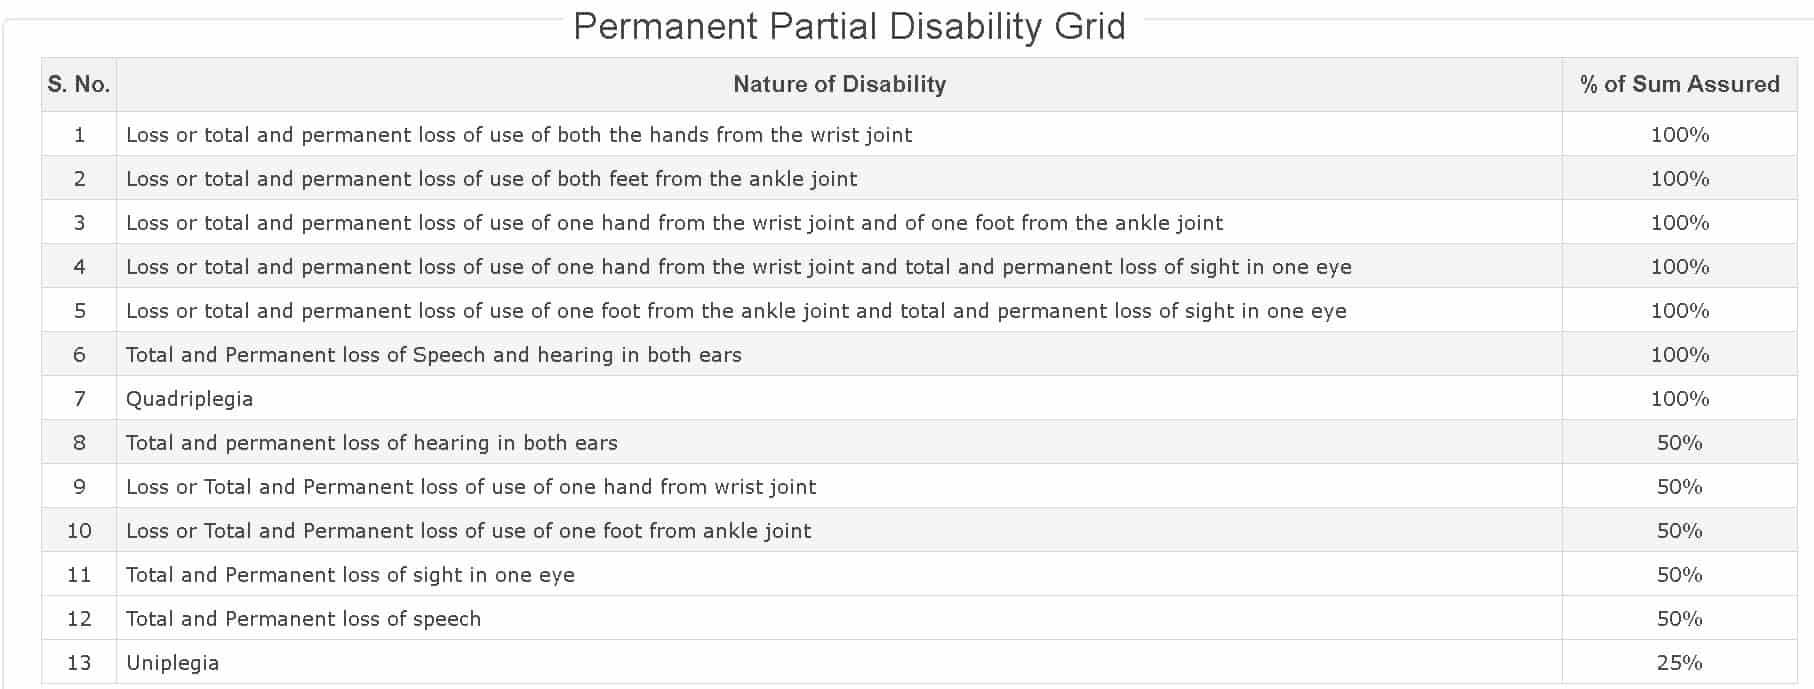 Personal accident insurance policy: Permanent Partial Disability Grid of Max Bupa